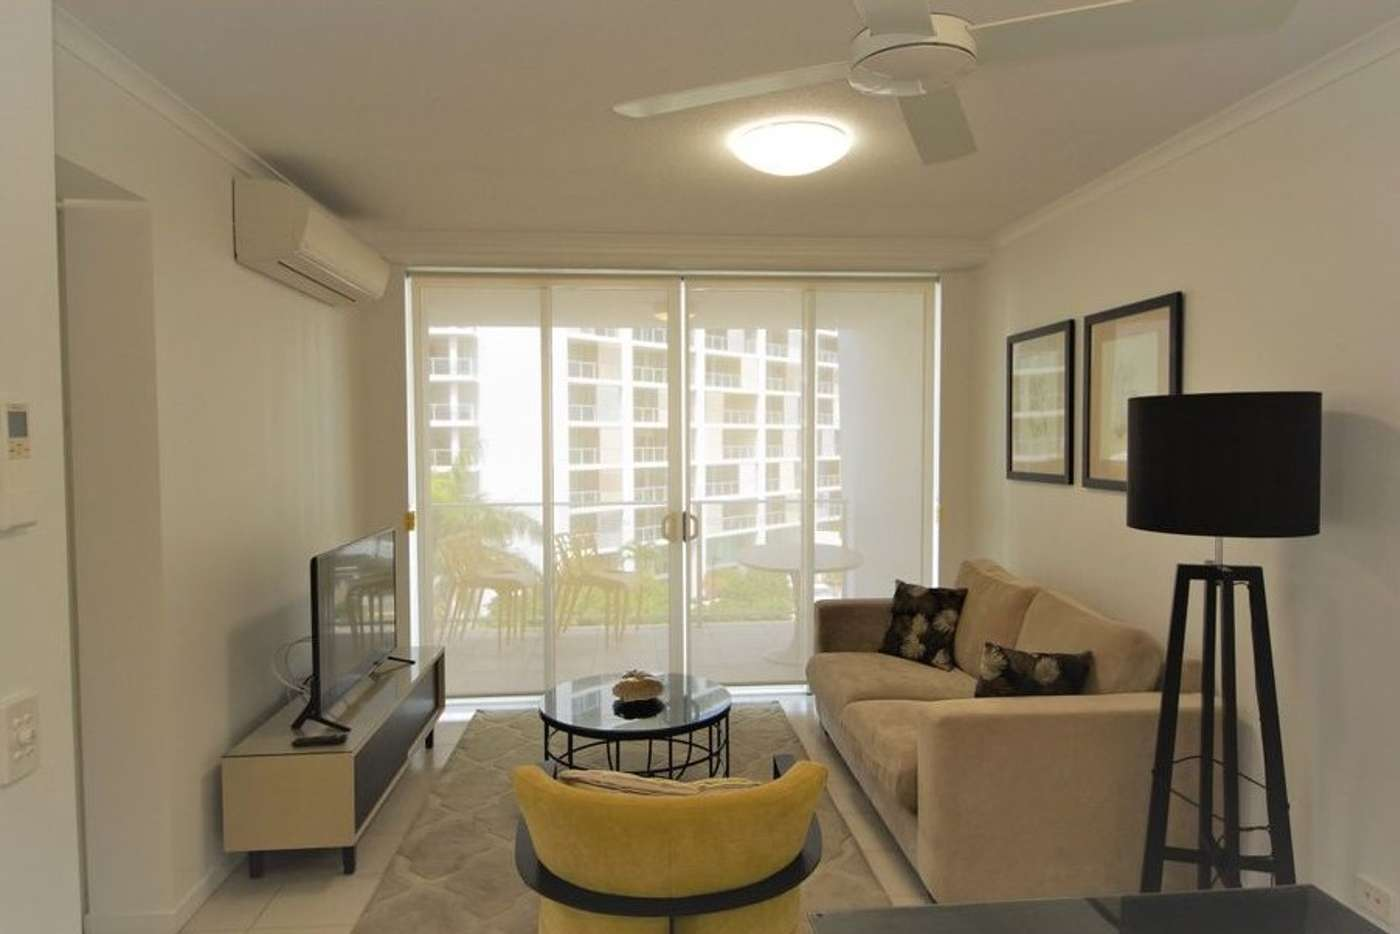 Main view of Homely apartment listing, 21/7 Nelson Street, Mackay QLD 4740